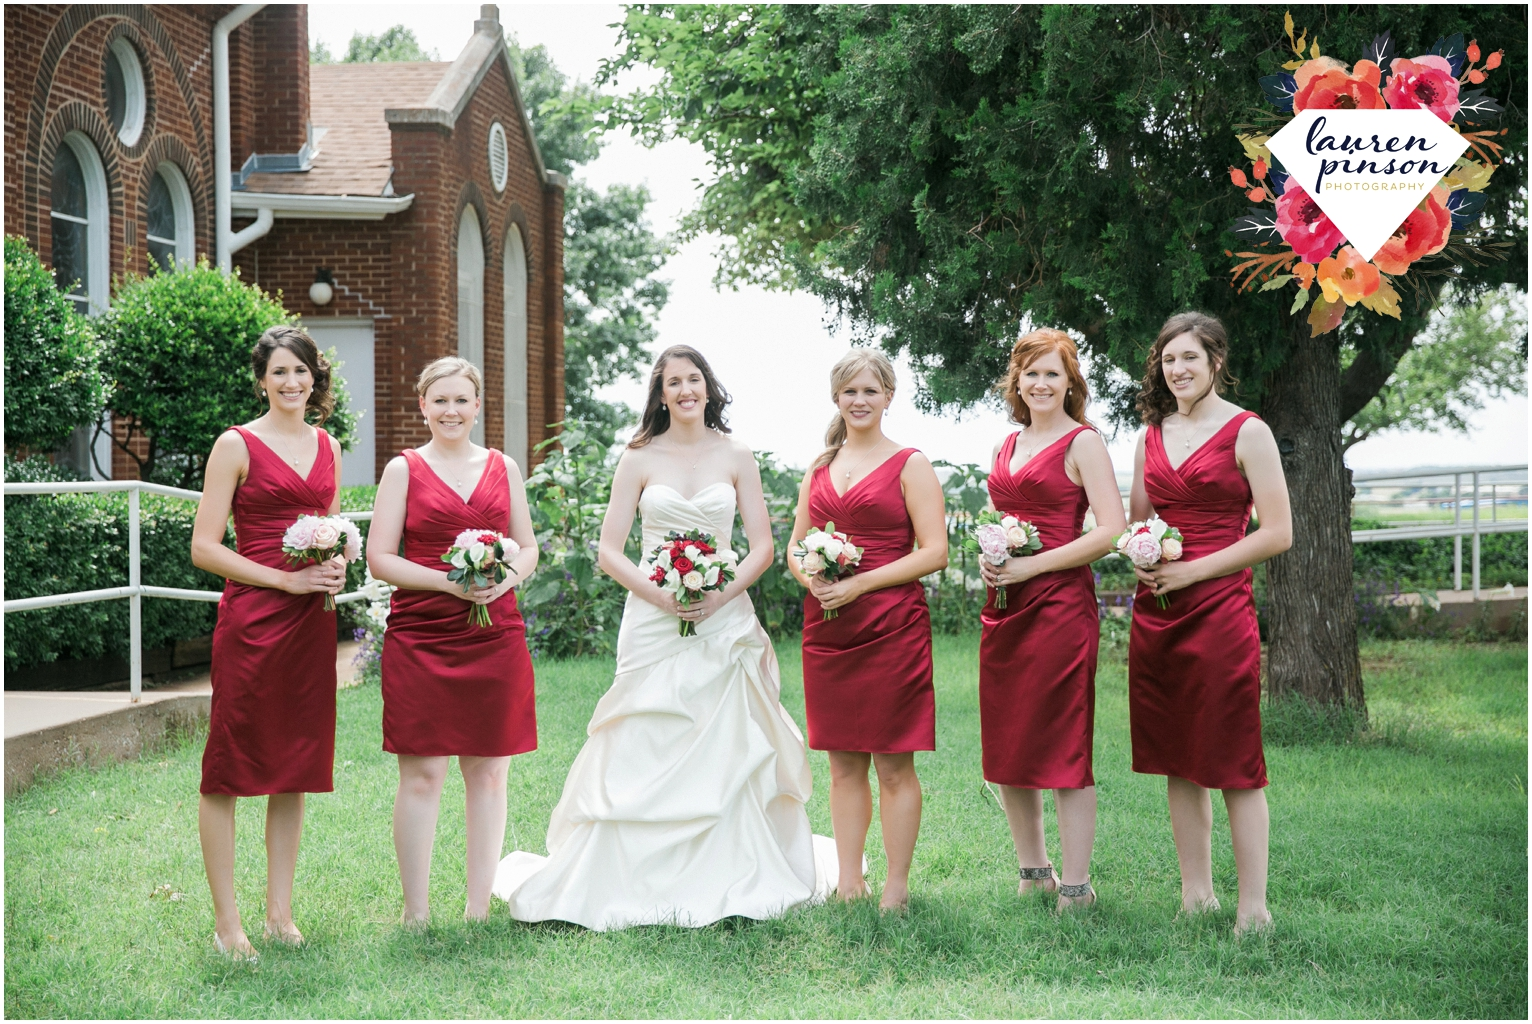 wichita-falls-wedding-photographer-OUR-Lady-queen-of-peace-catholic-wedding-the-forum-photography_0910.jpg